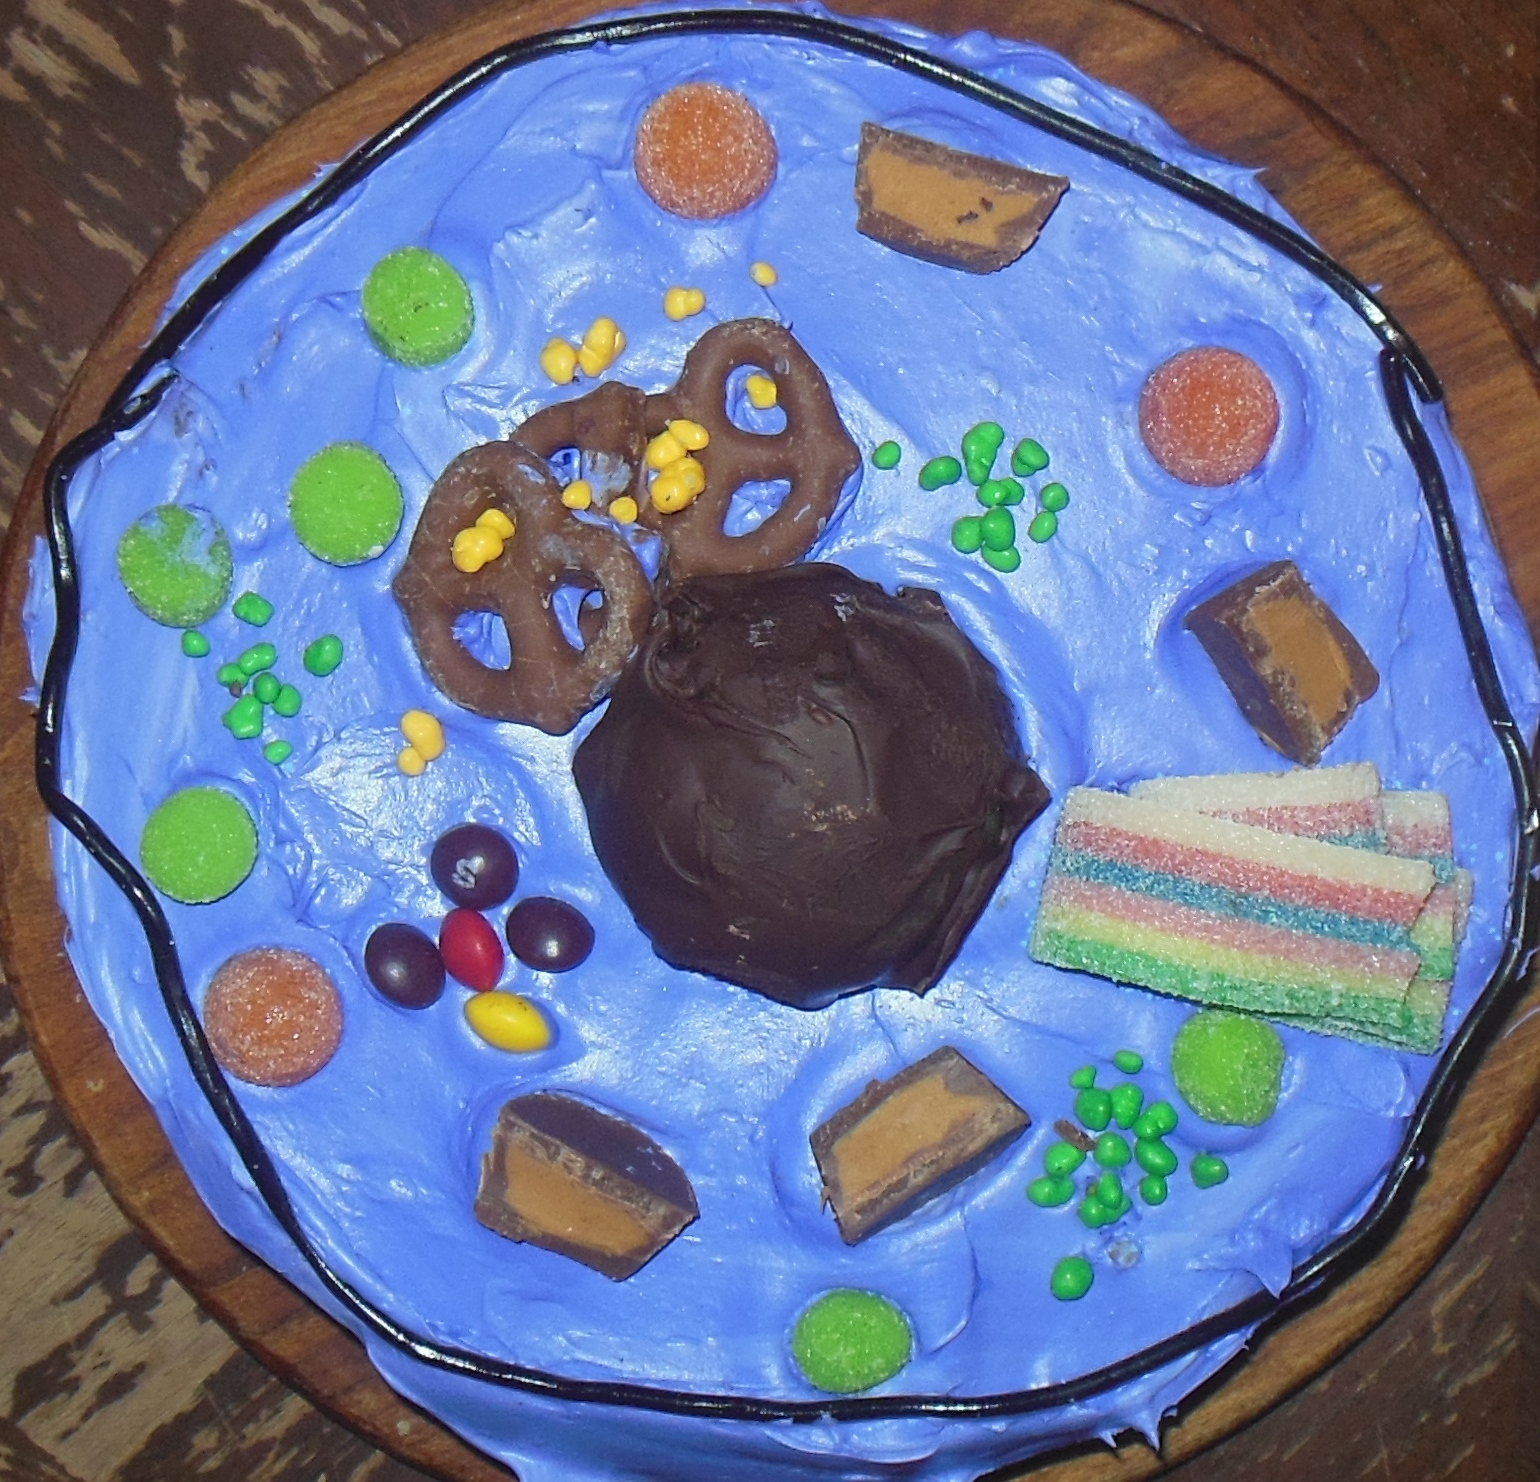 animal cell project cake www pixshark com images galleries with a bite diagram plant cells and animal cells diagram of plant cell labeled